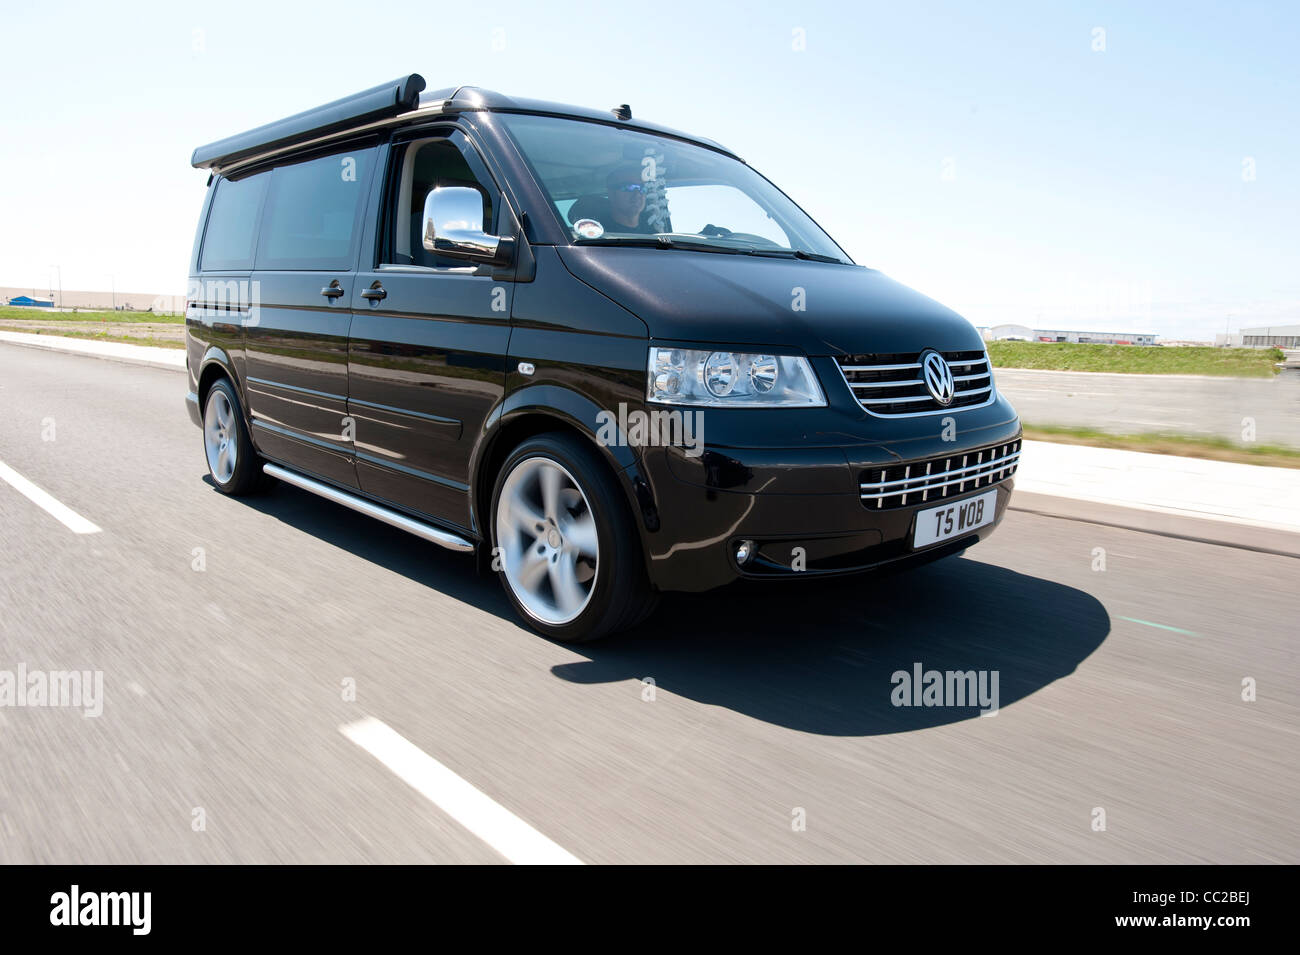 volkswagen vw t5 california camper van driving stock photo royalty free image 41849546 alamy. Black Bedroom Furniture Sets. Home Design Ideas